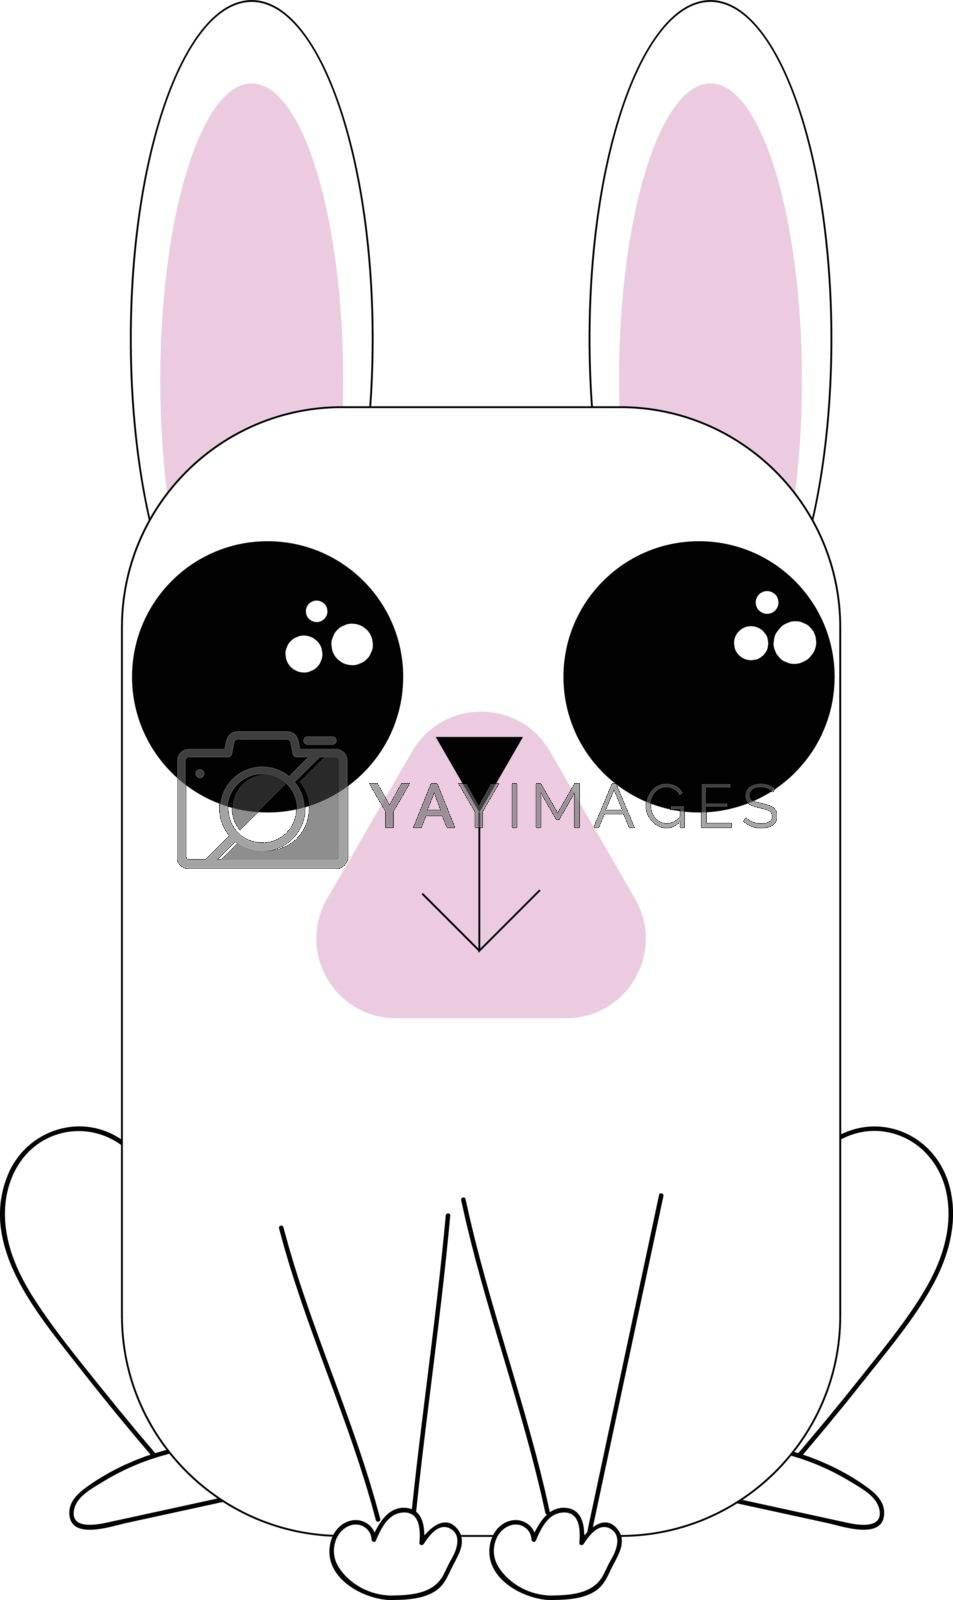 Royalty free image of Line art of a cute little dog vector or color illustration by Morphart